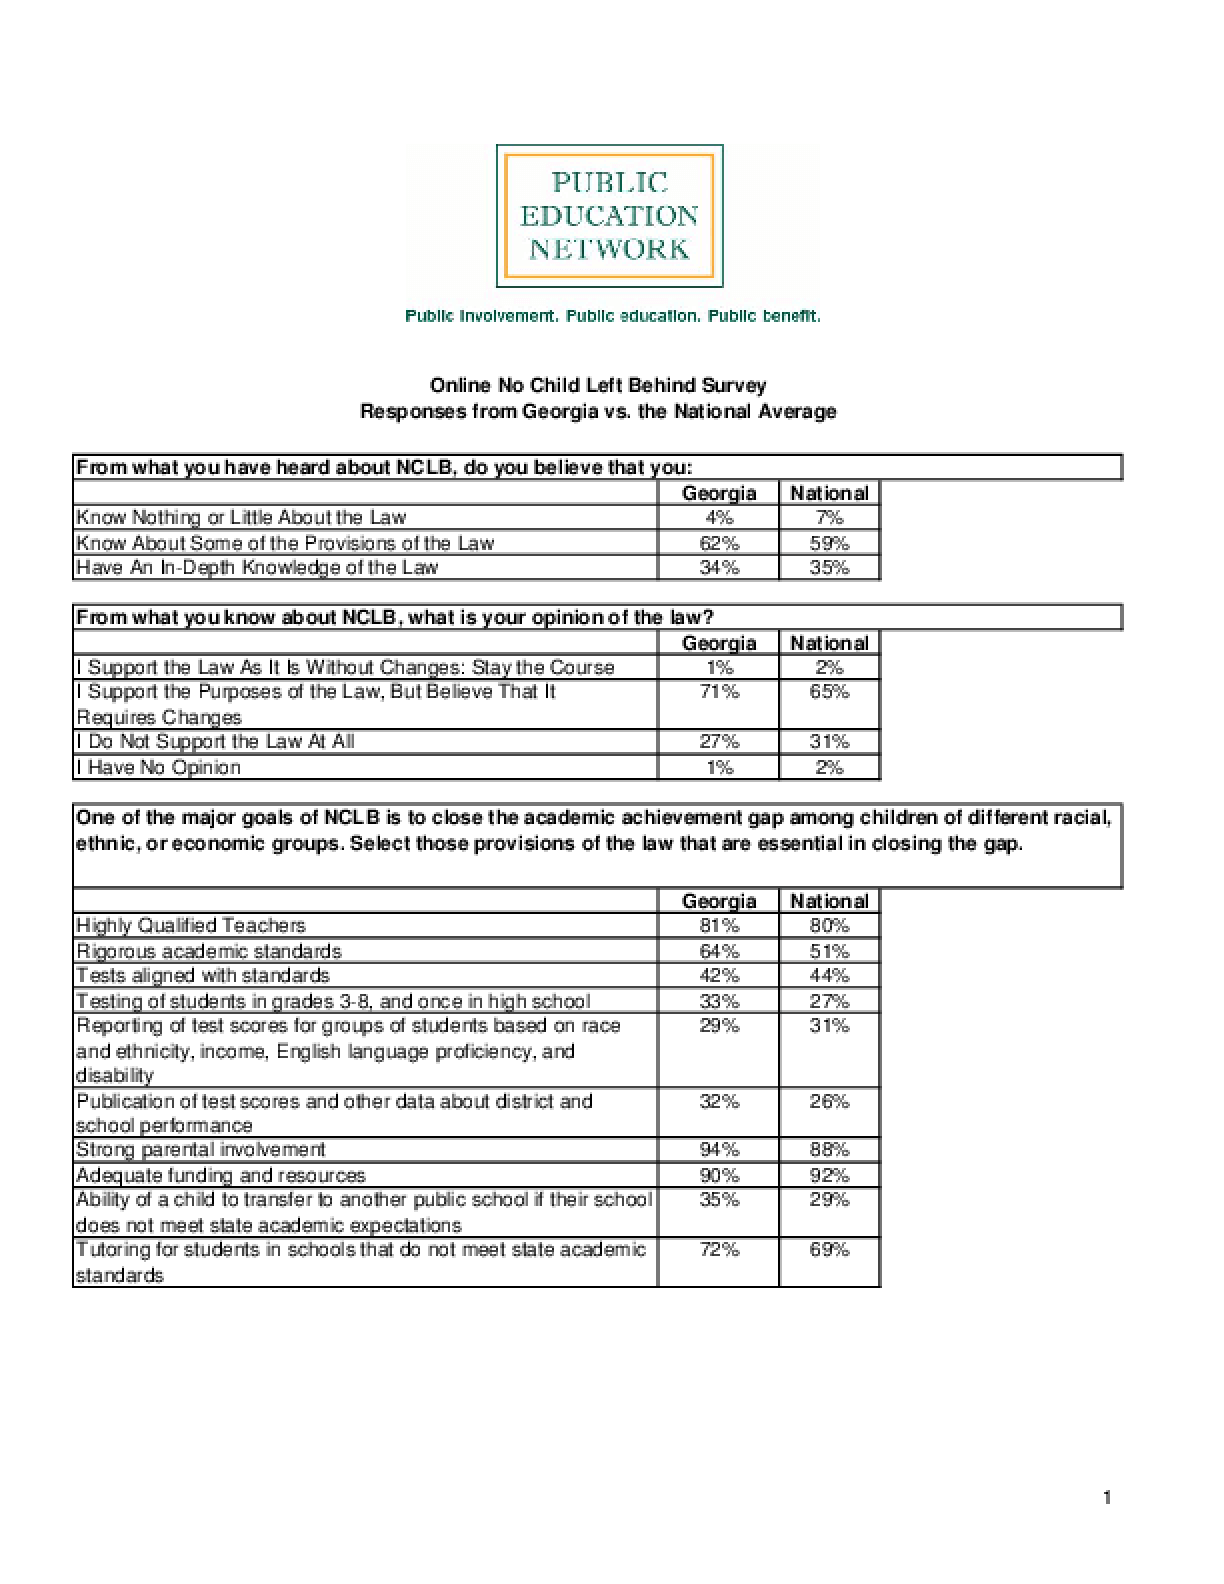 Online No Child Left Behind Survey Responses from Georgia vs. the National Average